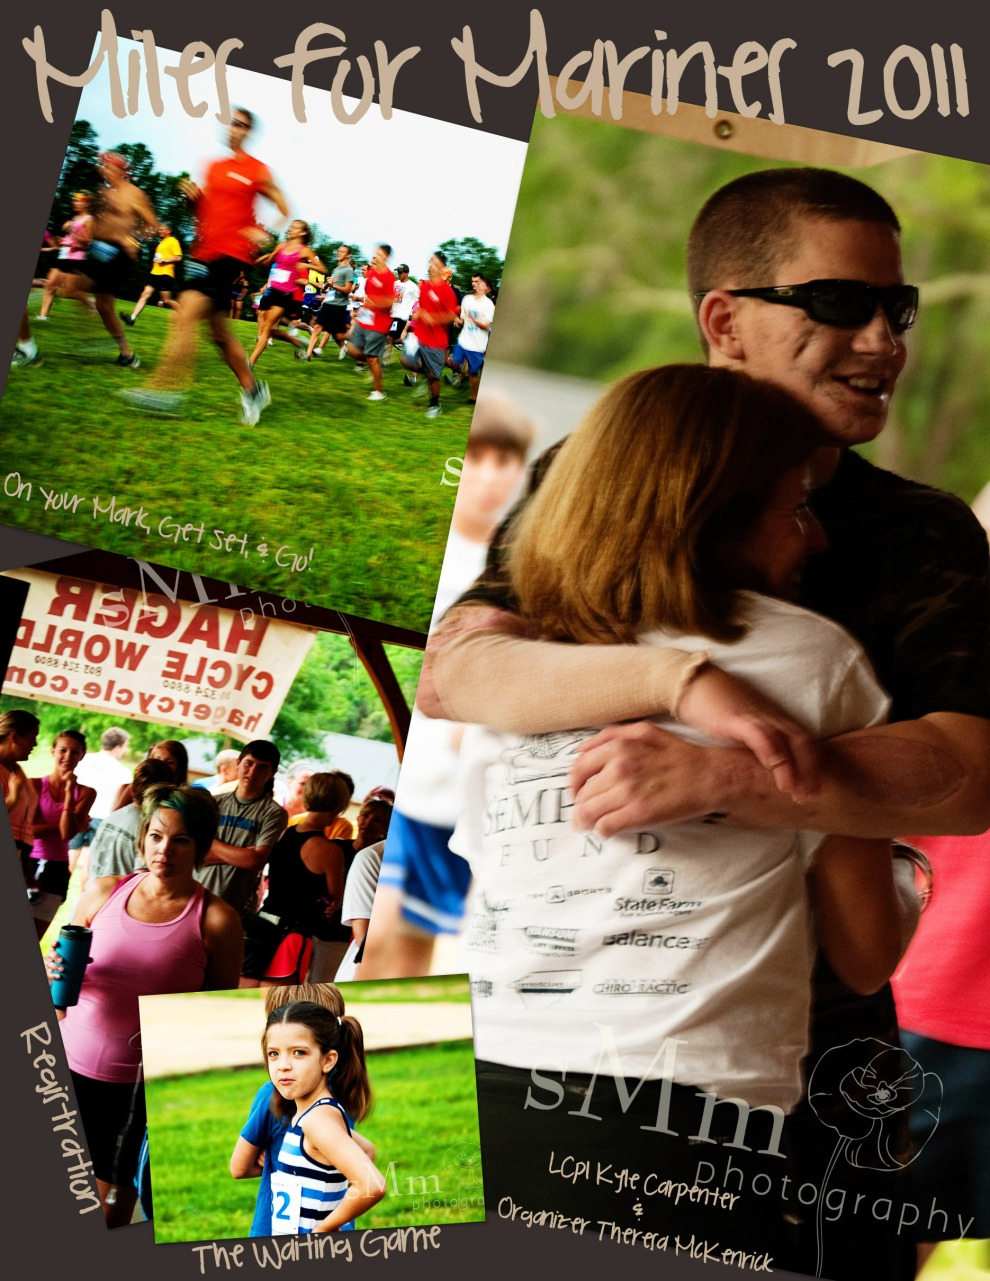 Miles for Marines 2011